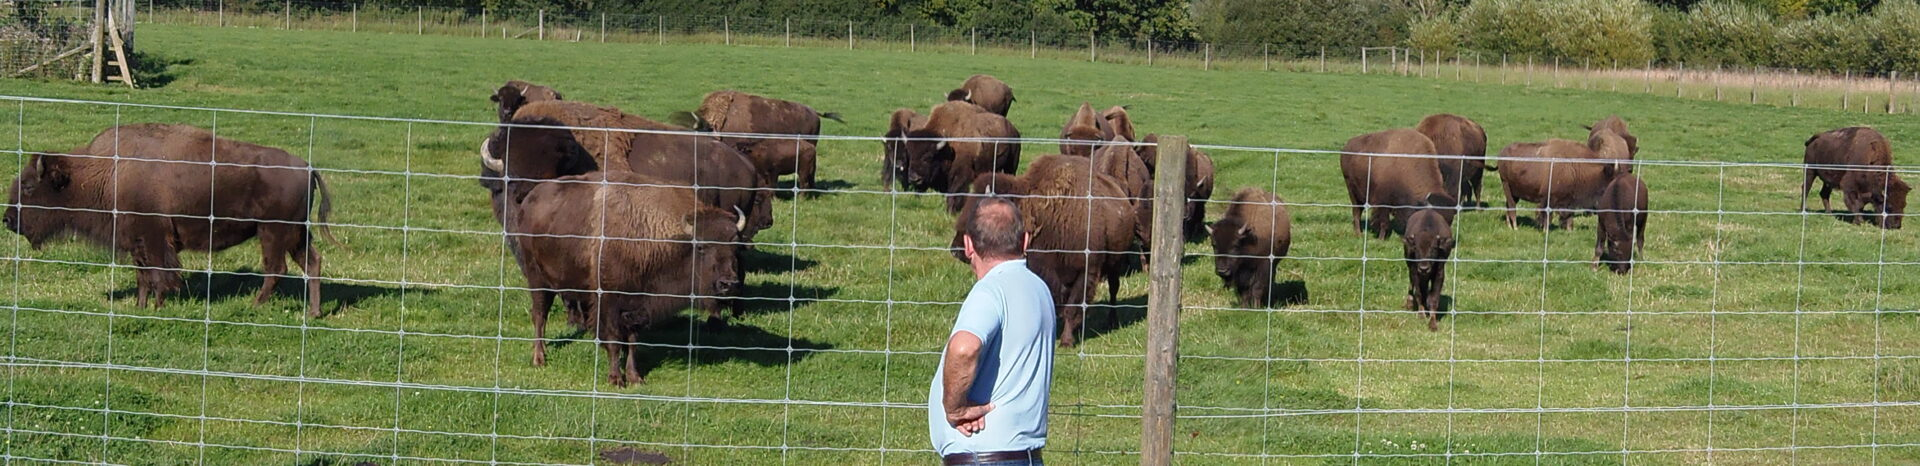 group of bisons near fence